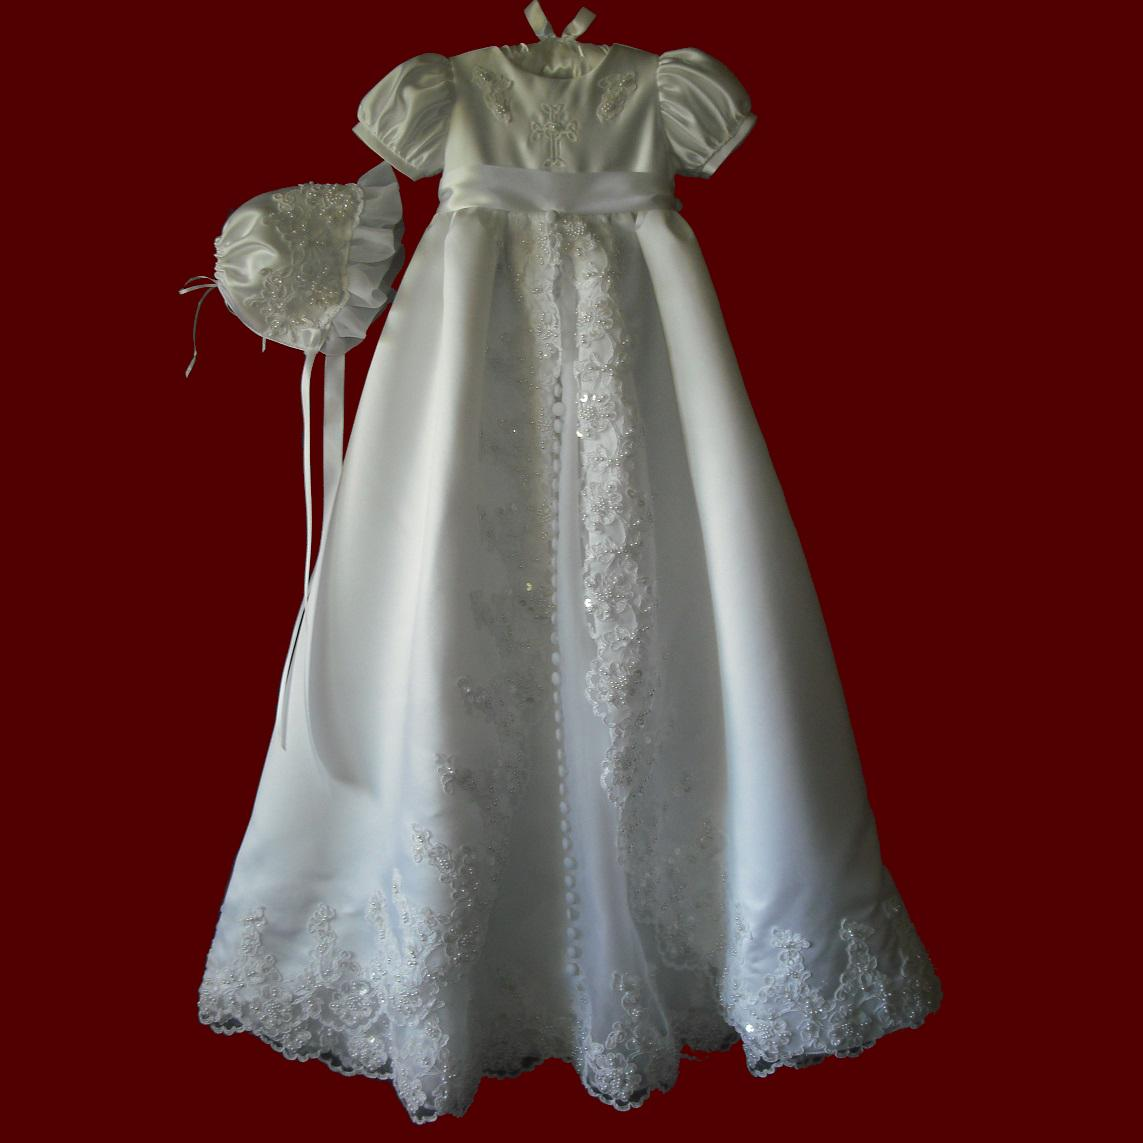 Satin & Organza Christening Gown With Beaded Lace & Embroidered ...